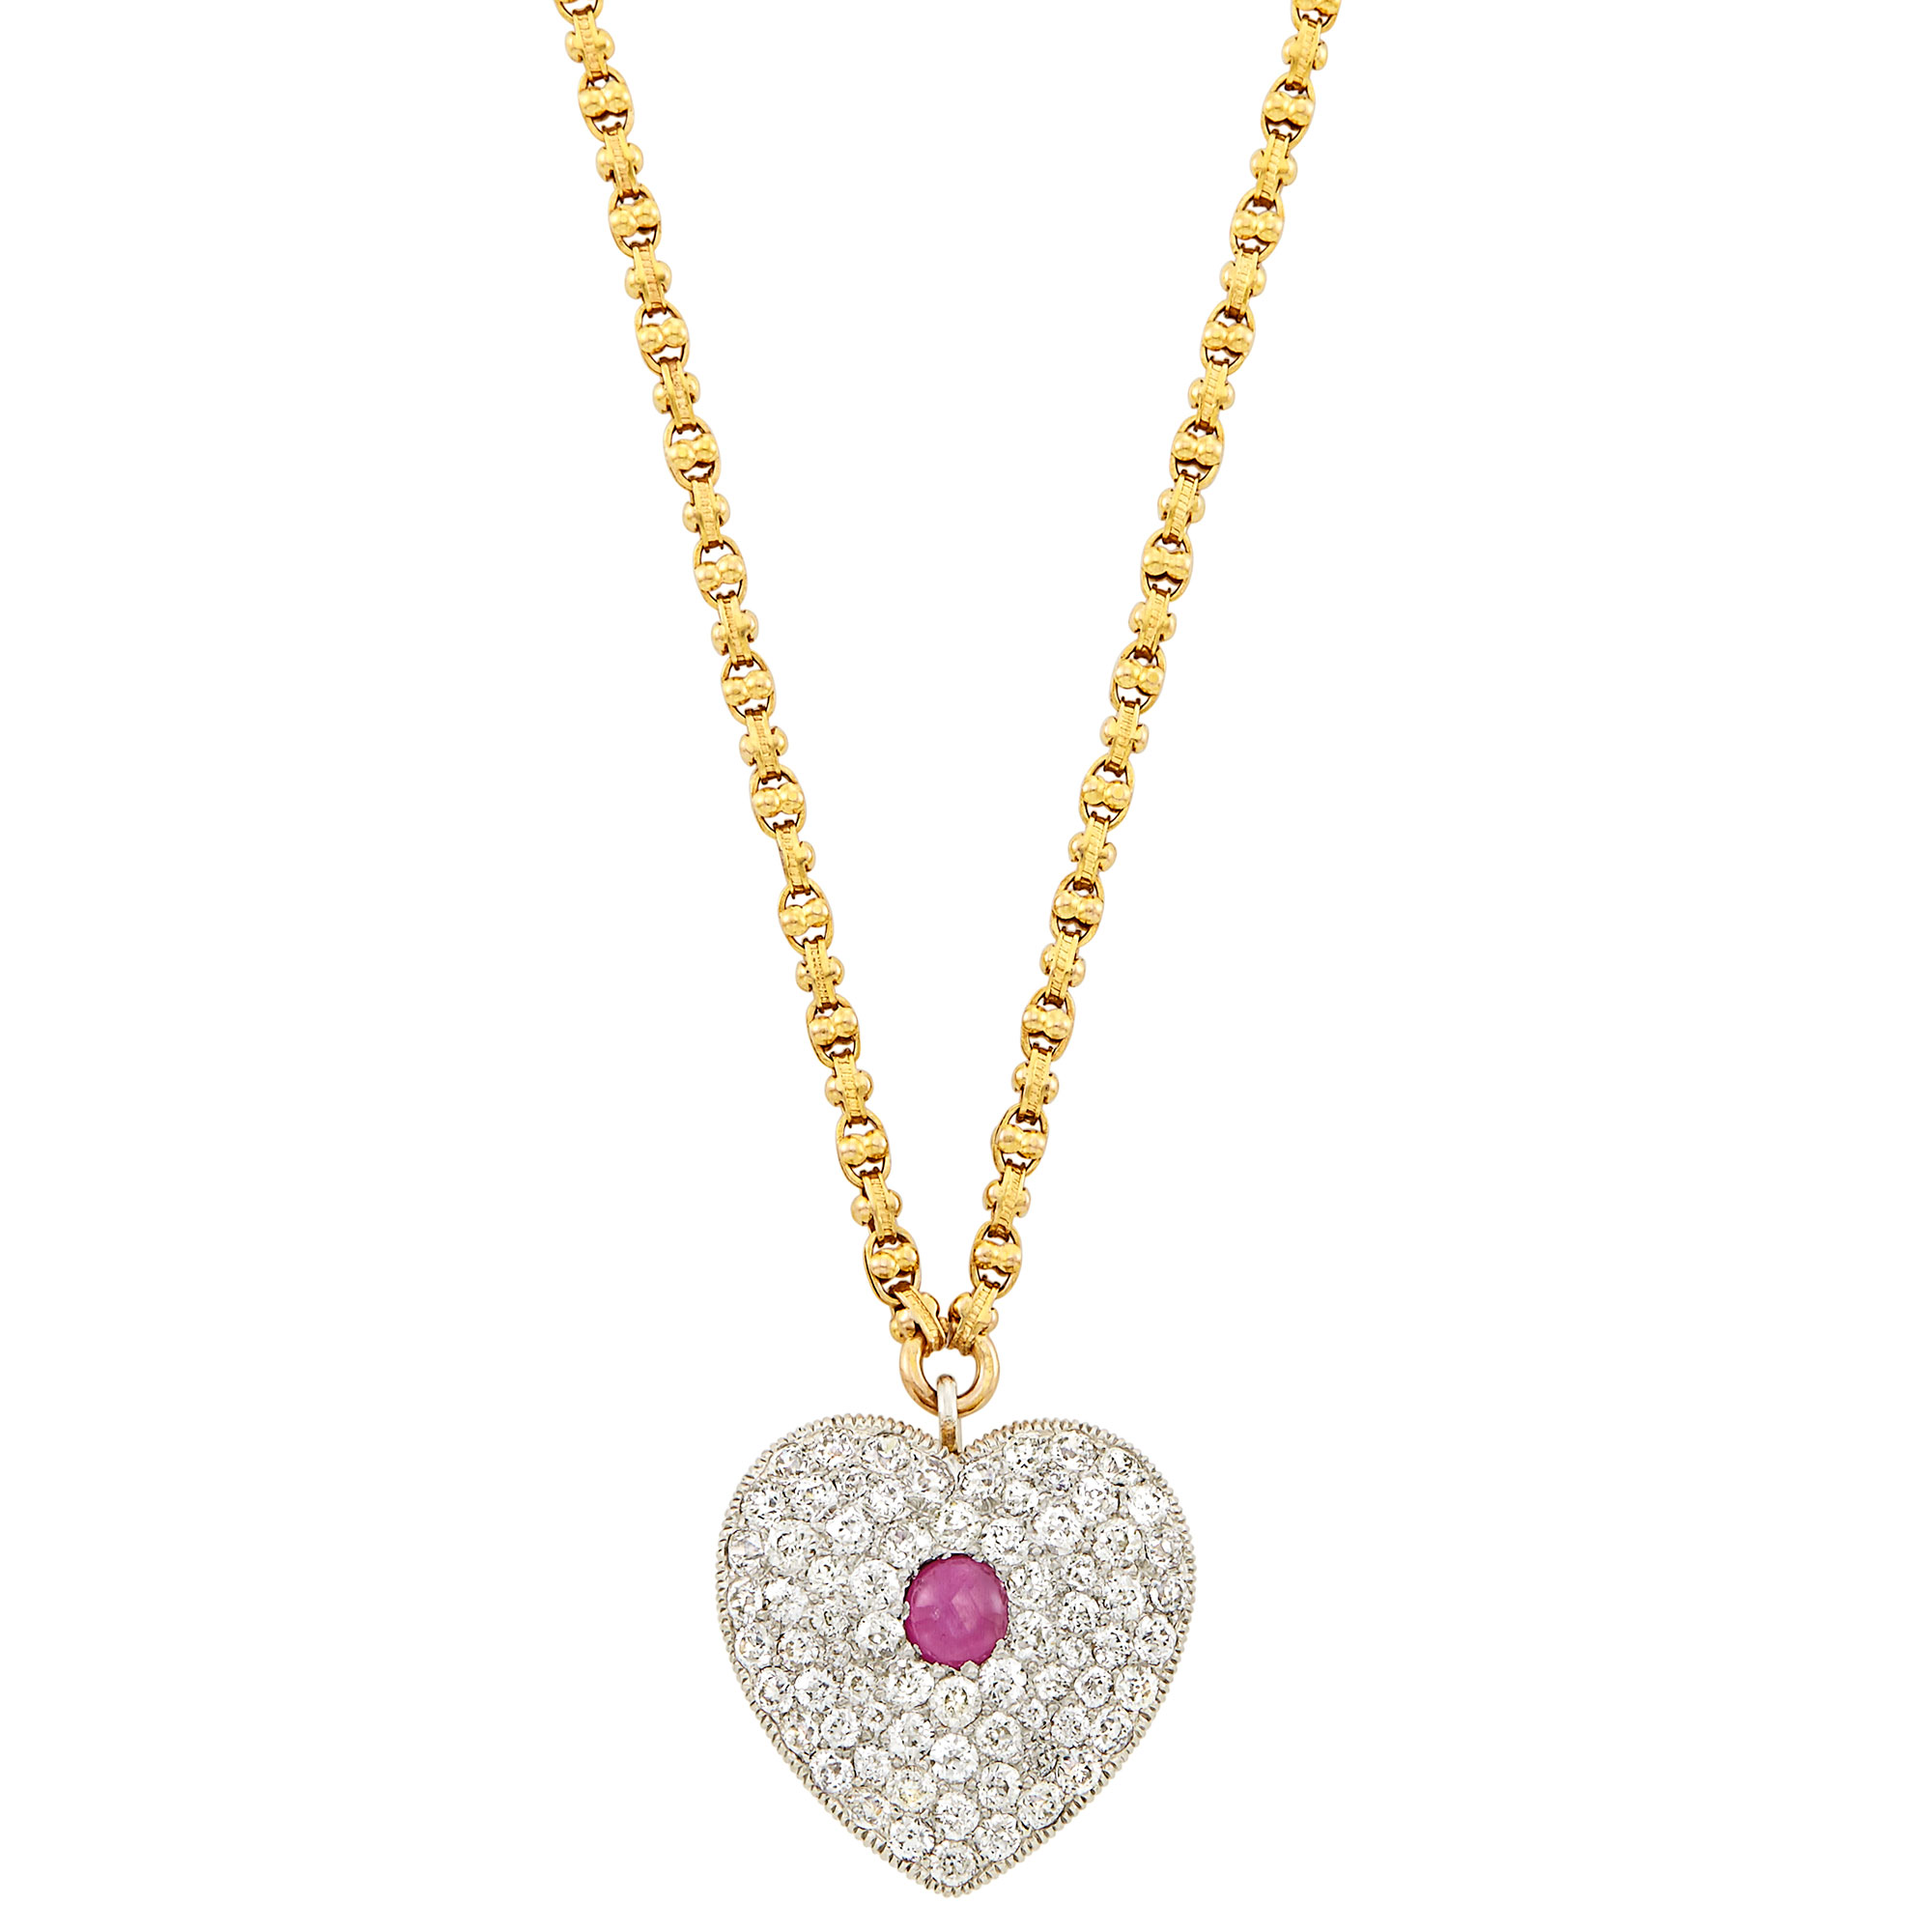 Lot image - Antique Platinum, Gold, Star Ruby and Diamond Pendant-Brooch with Gold Chain